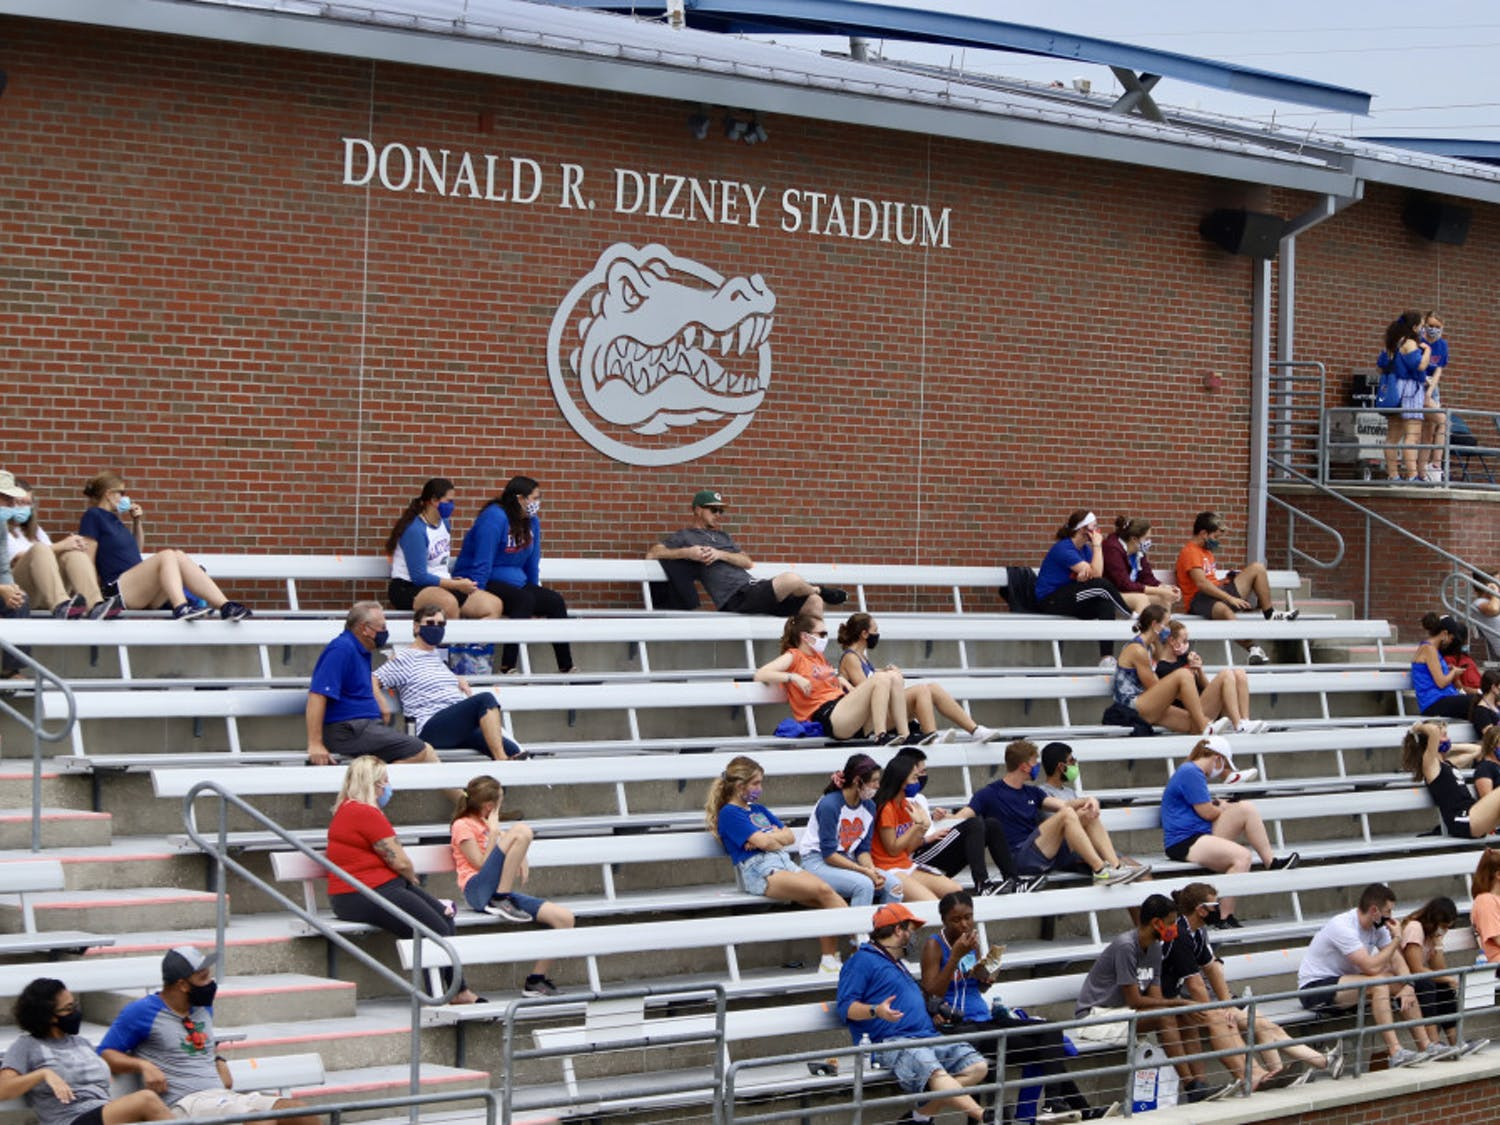 Groups of fans social distance and wear masks at Florida's first home game of the season. Friday is their final game in Donald R. Dizney Stadium this season, and theGators look to recover their conference record with a win over the Volunteers.